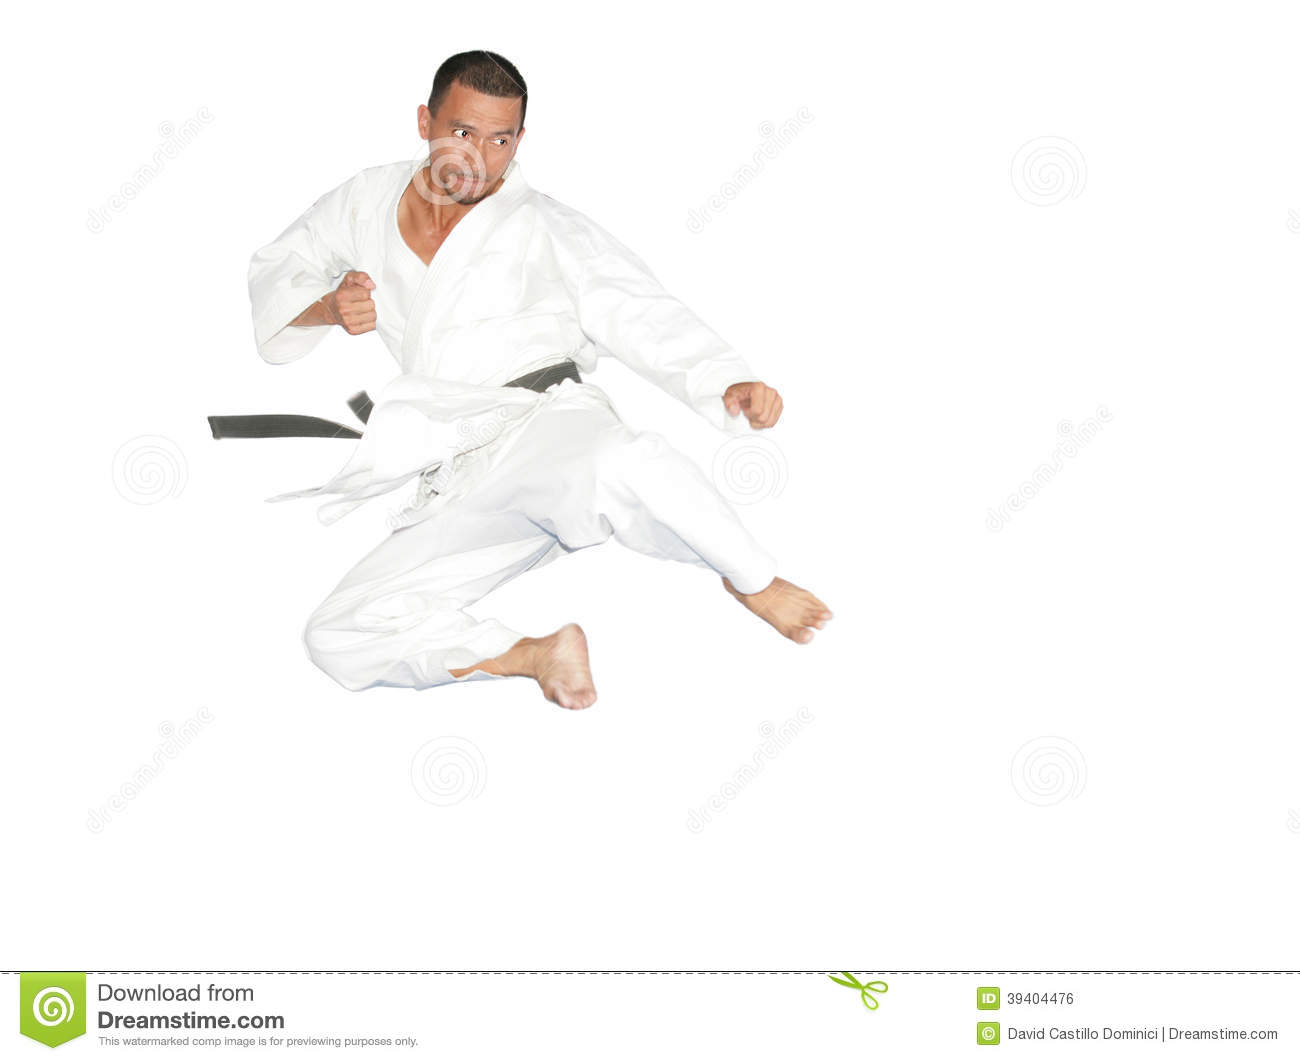 Black Belt Karate Man Jumping To Give A High Kick Stock